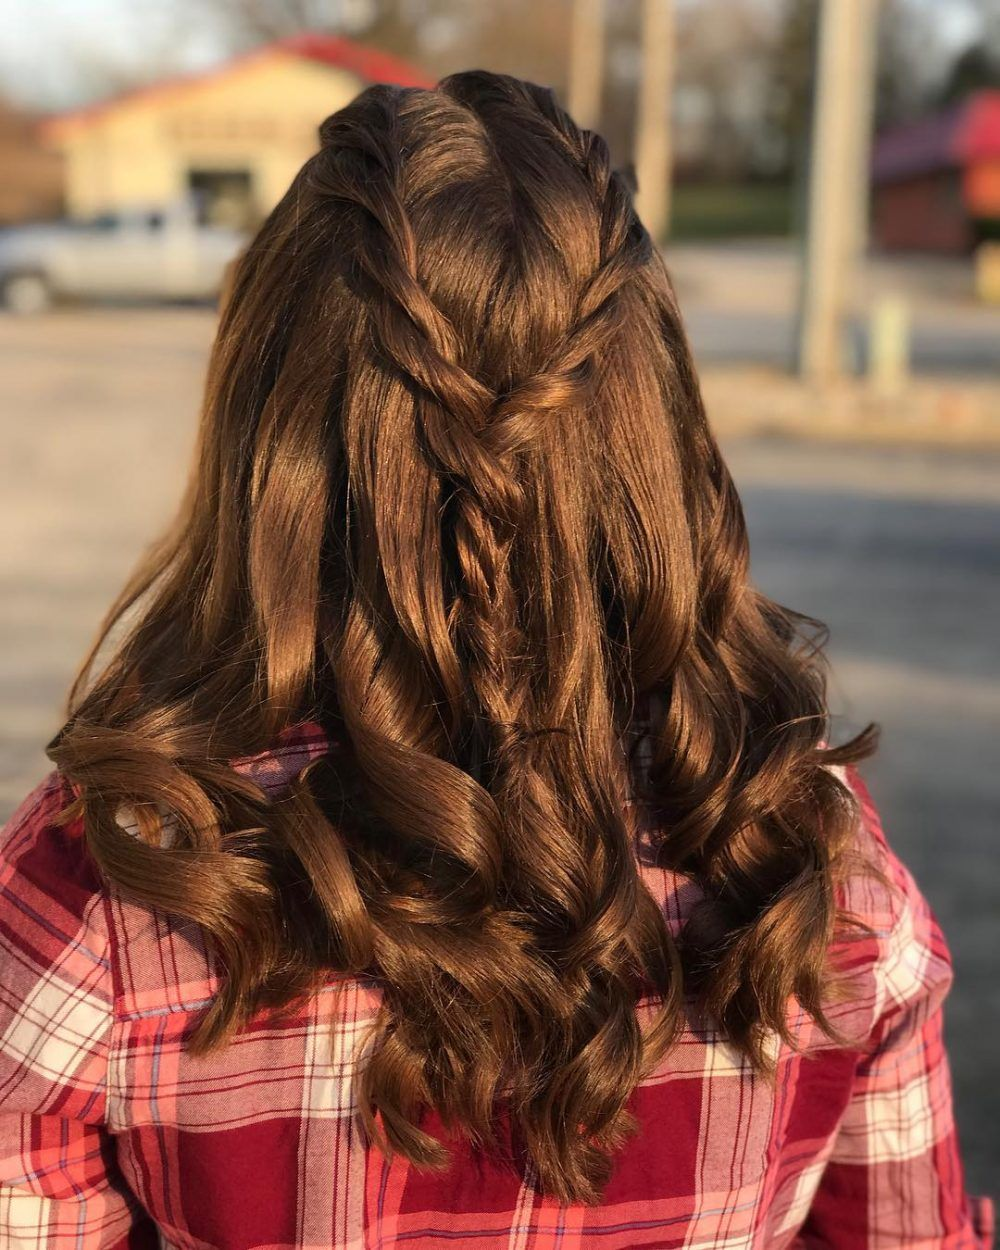 23 Cute Prom Hairstyles for 2020 - Updos, Braids, Half Ups ...